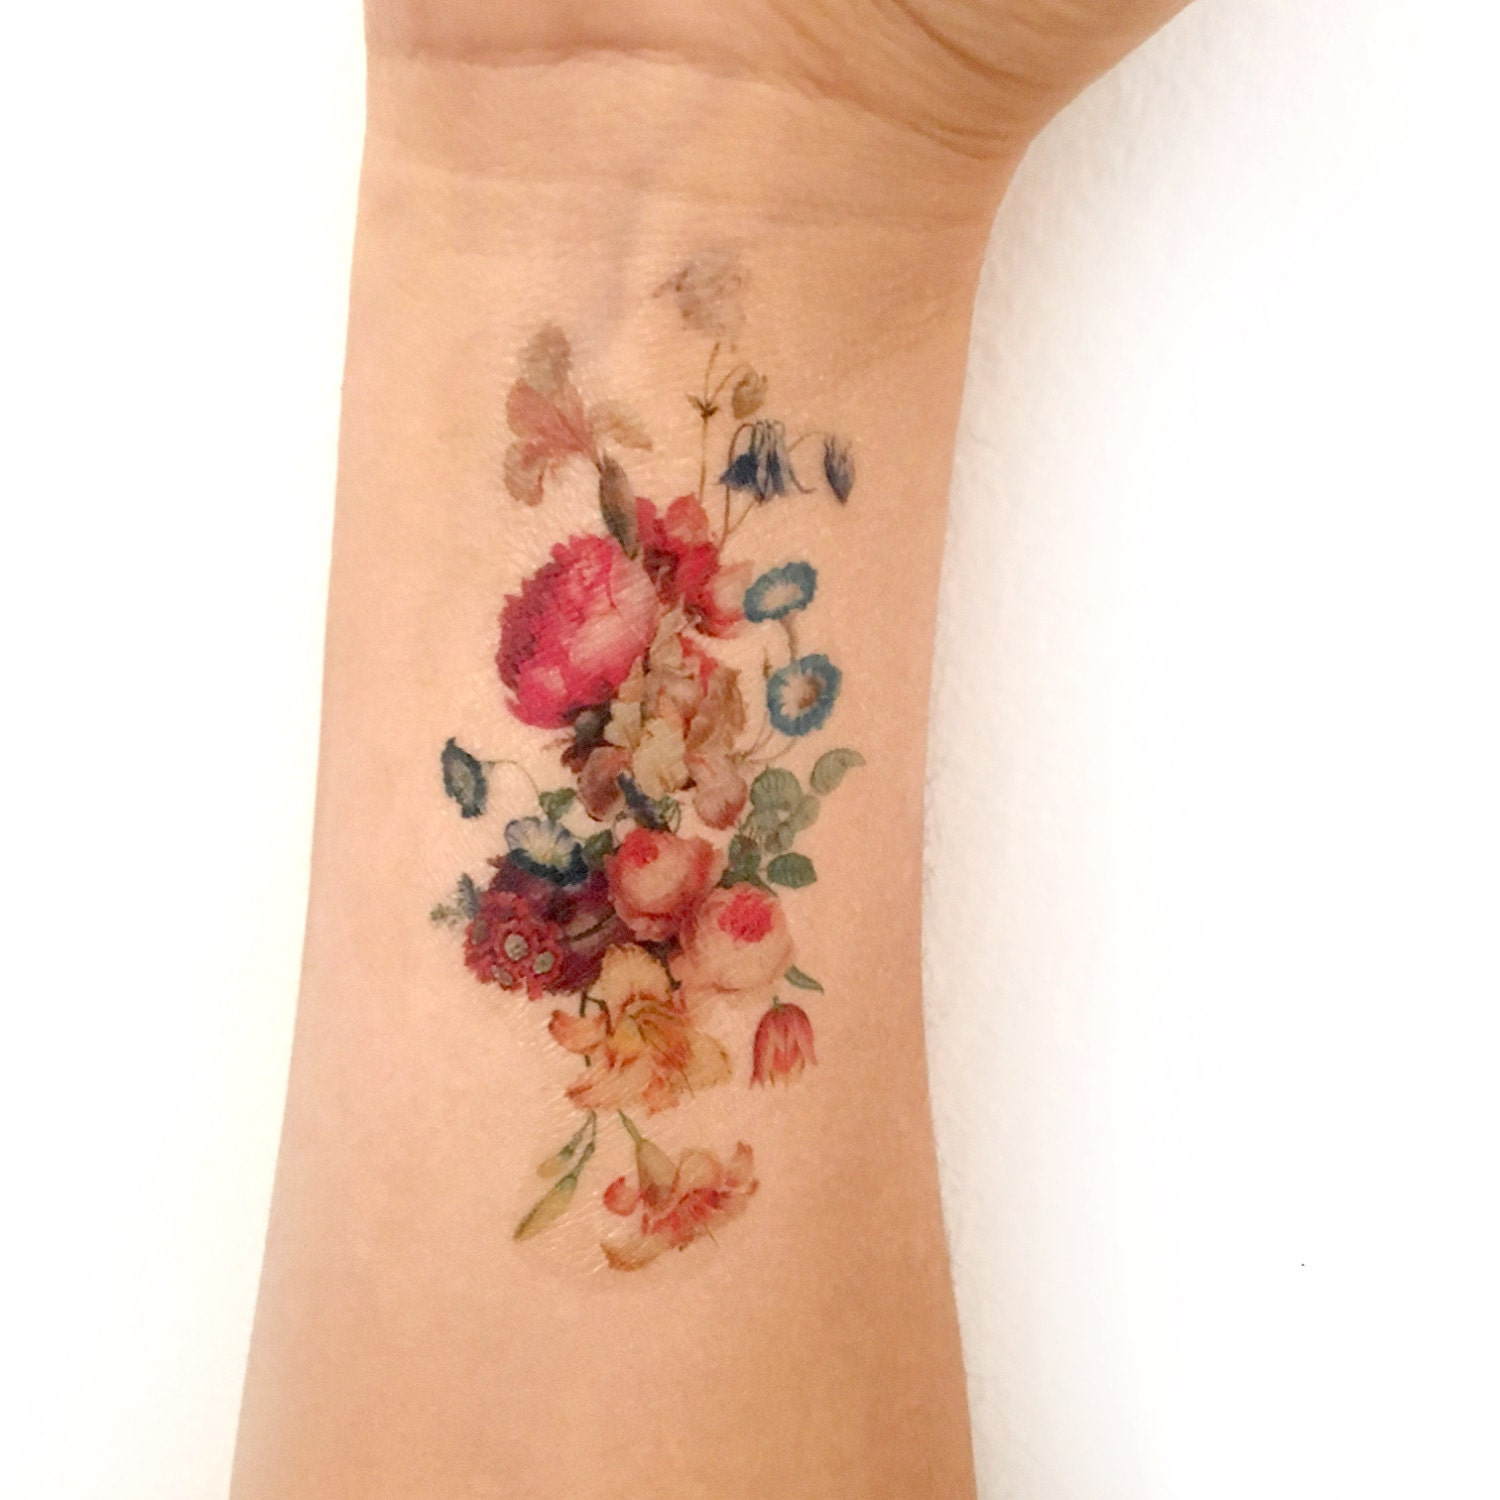 b78ffd44f Vintage floral temporary tattoo. Fresh bouquet of flowers | Etsy